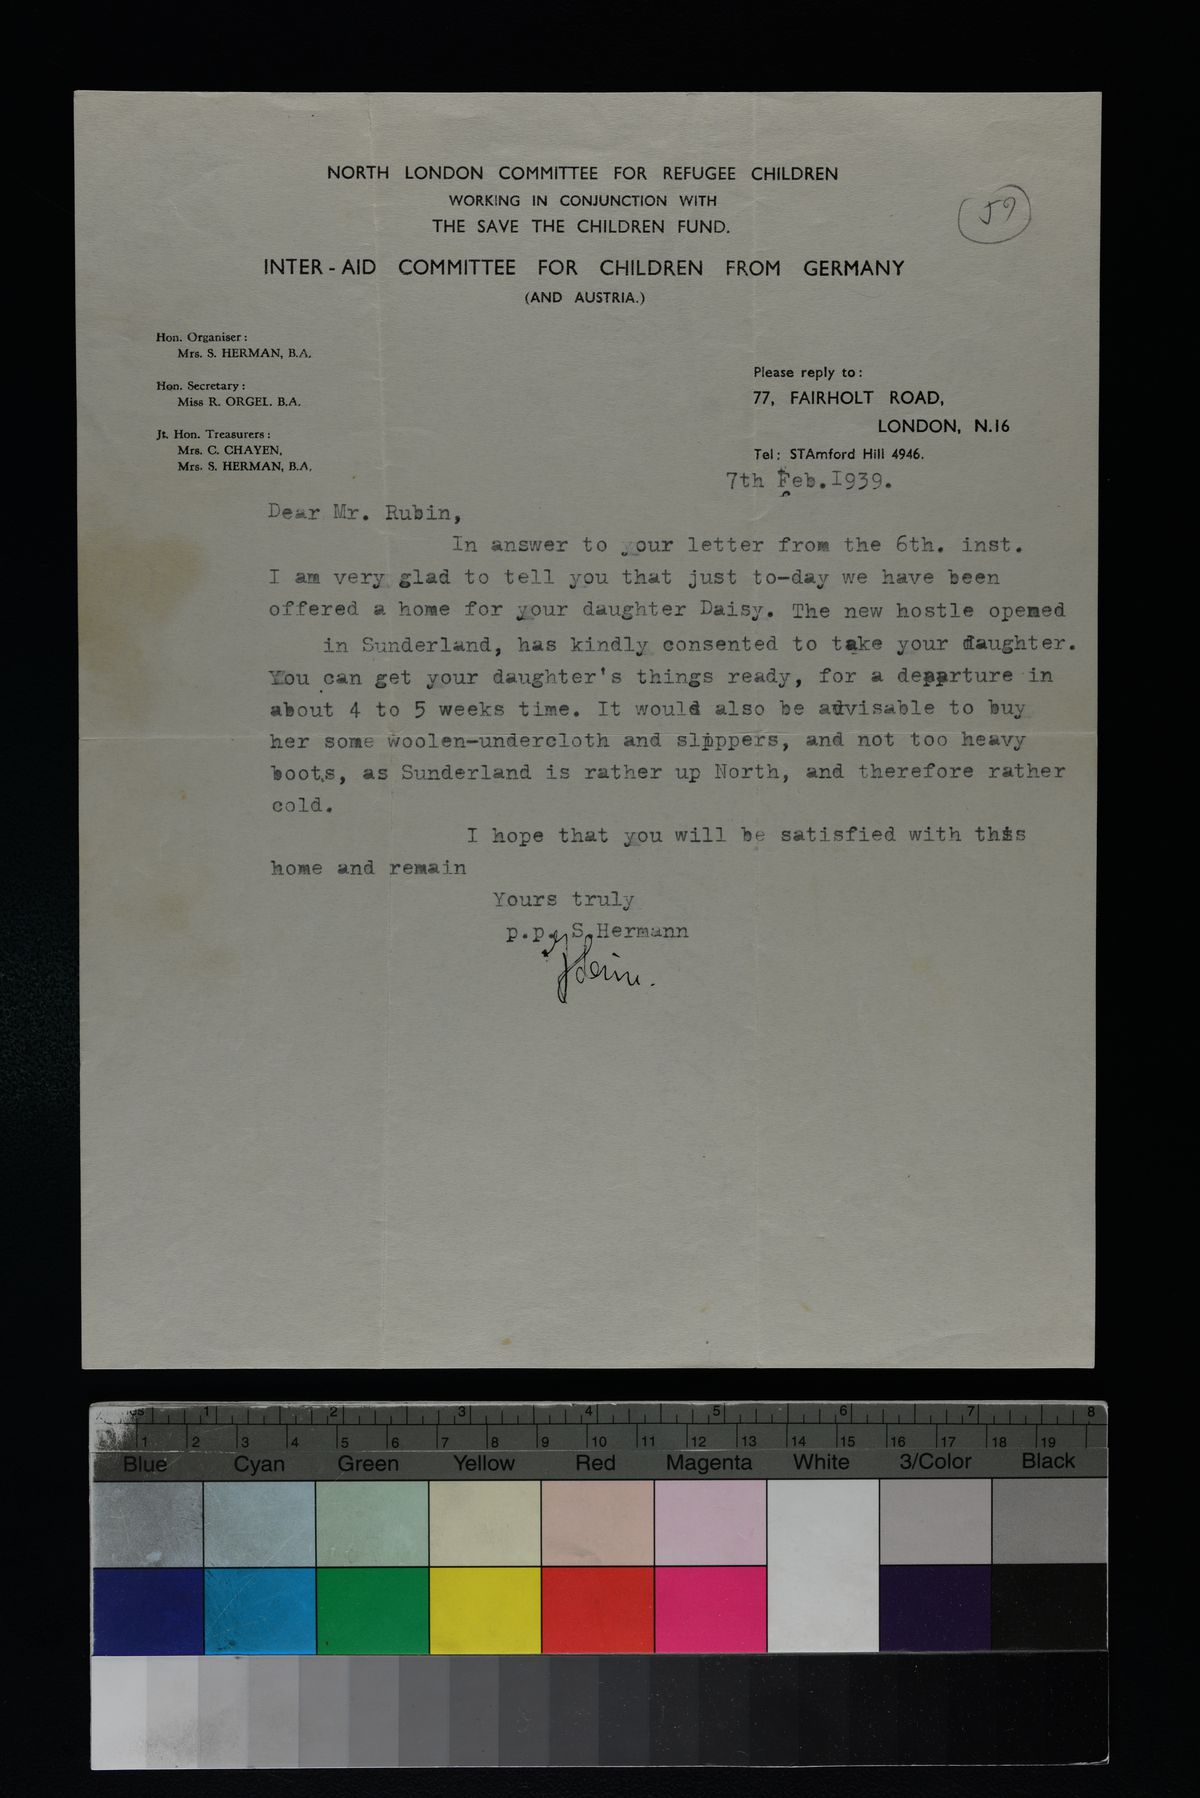 A letter confirming a home in England for Daisy. [credit Yad Vashem Archives]